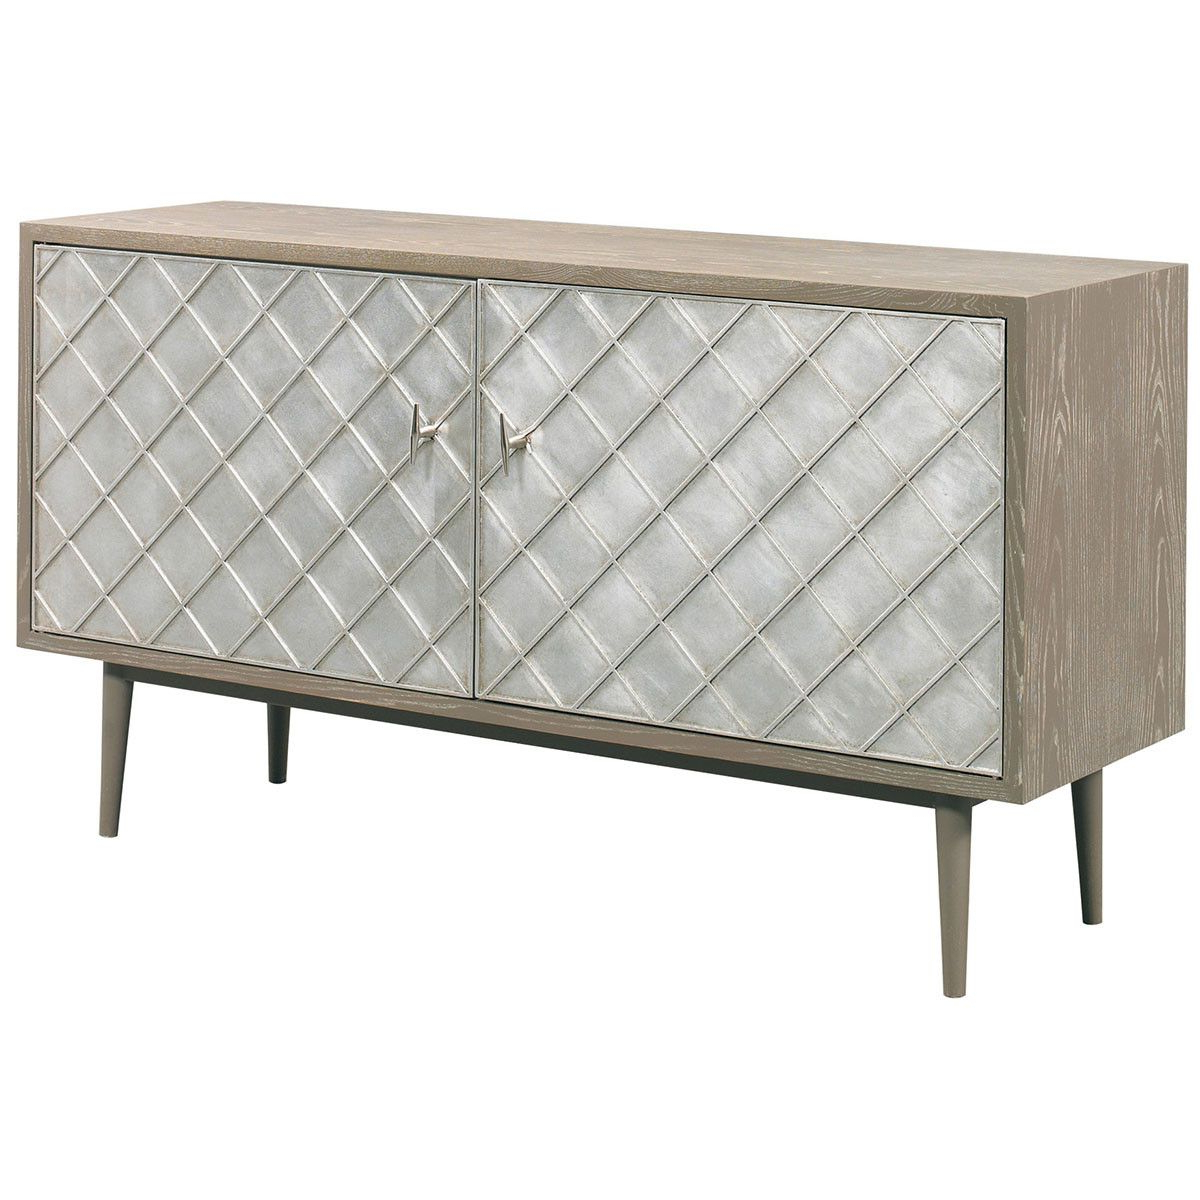 Cth Sherrill Occasional Vintage Made Modern Franco Media Cabinet Pertaining To Parsons Travertine Top & Stainless Steel Base 48X16 Console Tables (View 4 of 15)